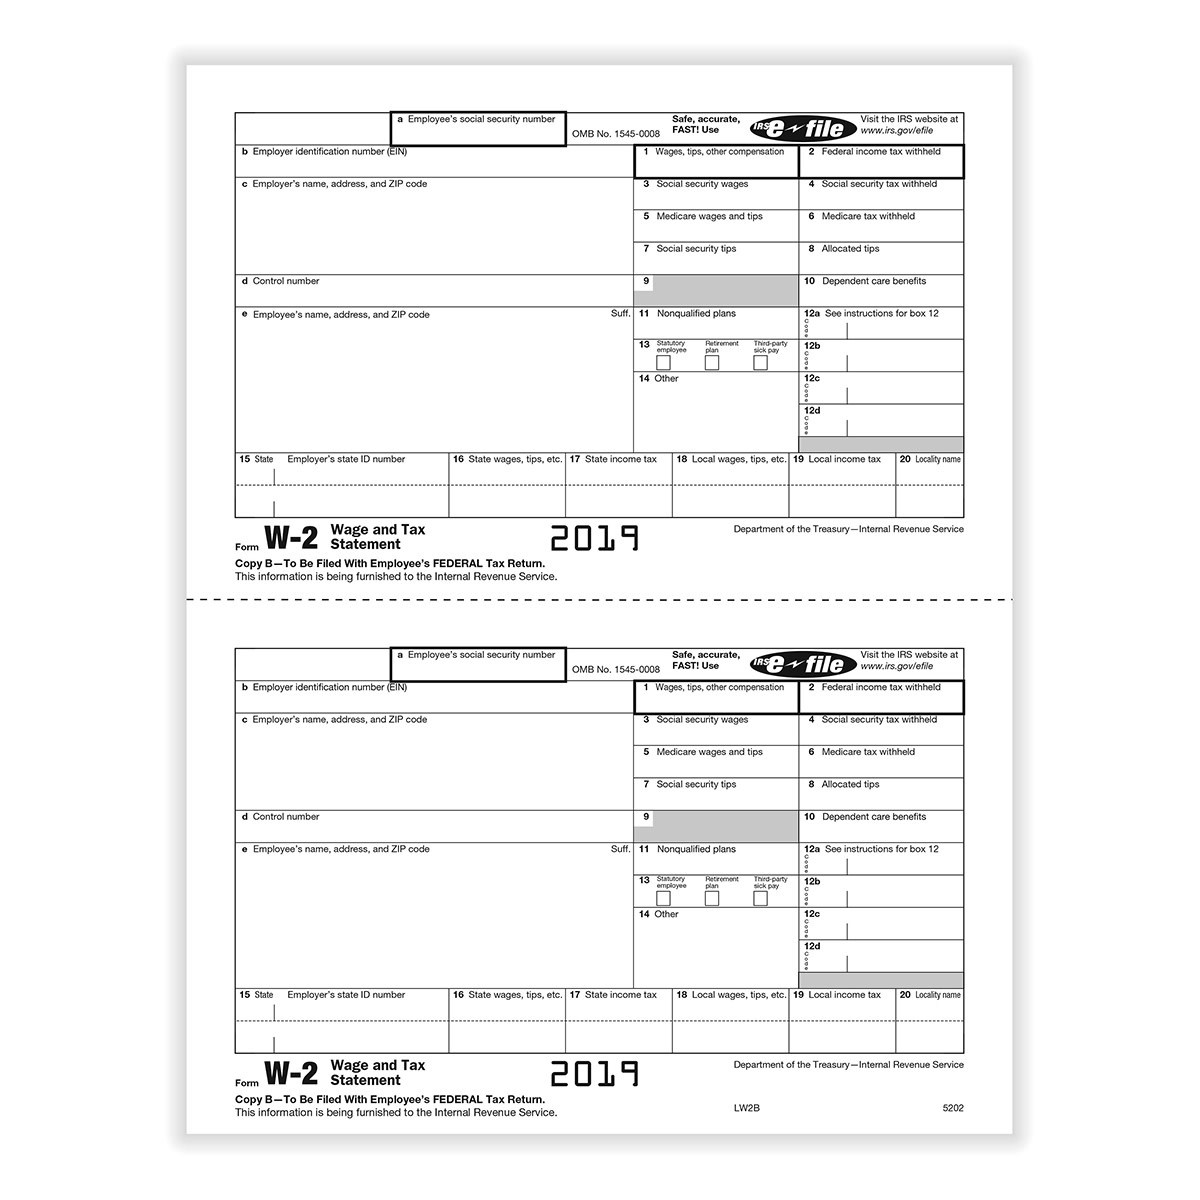 Form W-2 Copy B - Employee Federal IRS 5202